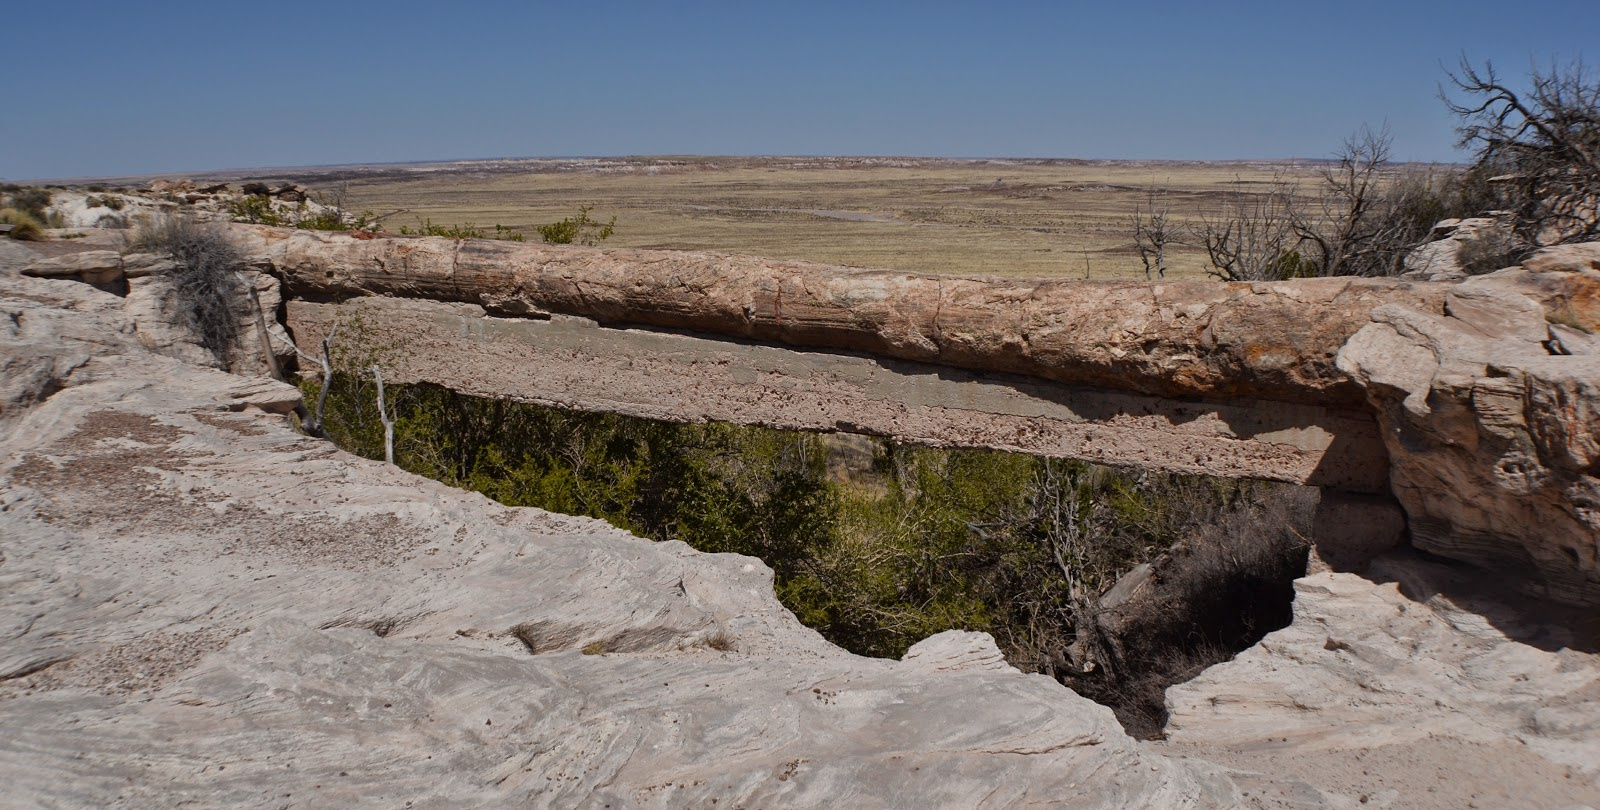 petrified forest natl pk dating The petrified forest national park is a huge area containing the mineralized & colorful wood fossils, badlands, petroglyphs & other sites of note photos & videos.